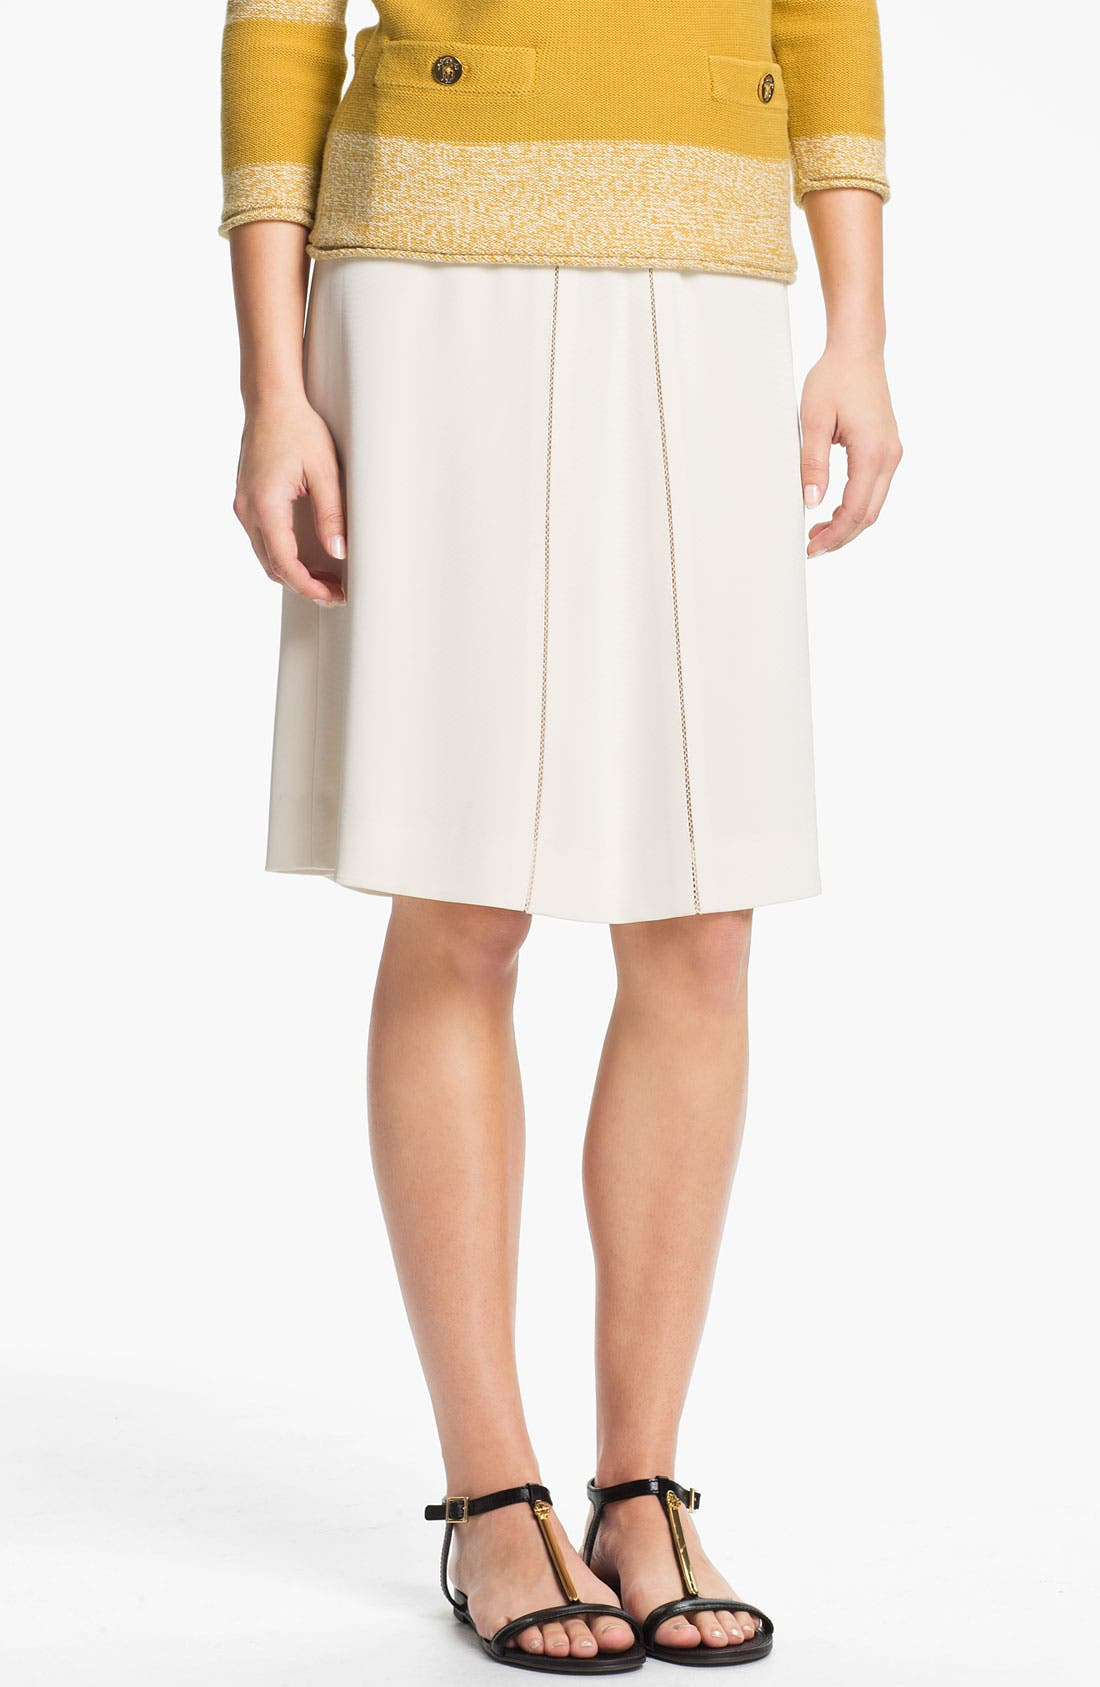 Alternate Image 1 Selected - Tory Burch 'Alton' Skirt